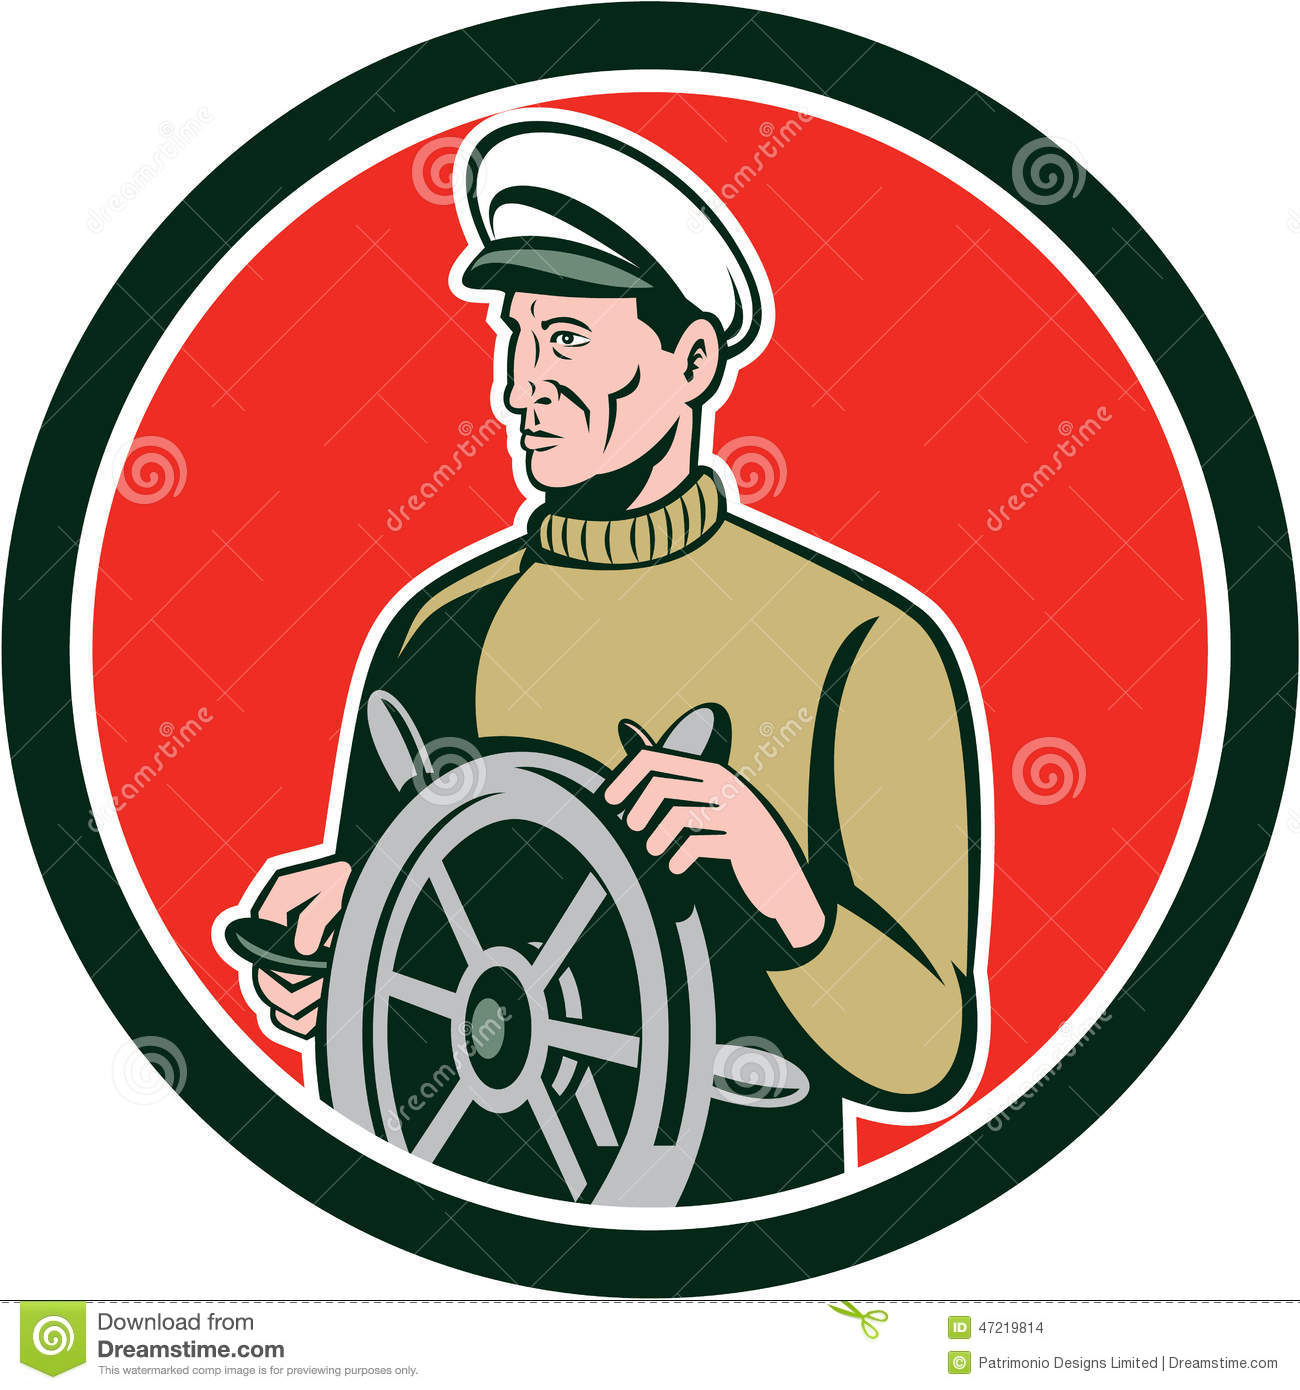 capitaine de la marine marchande de p u00eacheur wheel circle retro illustration stock